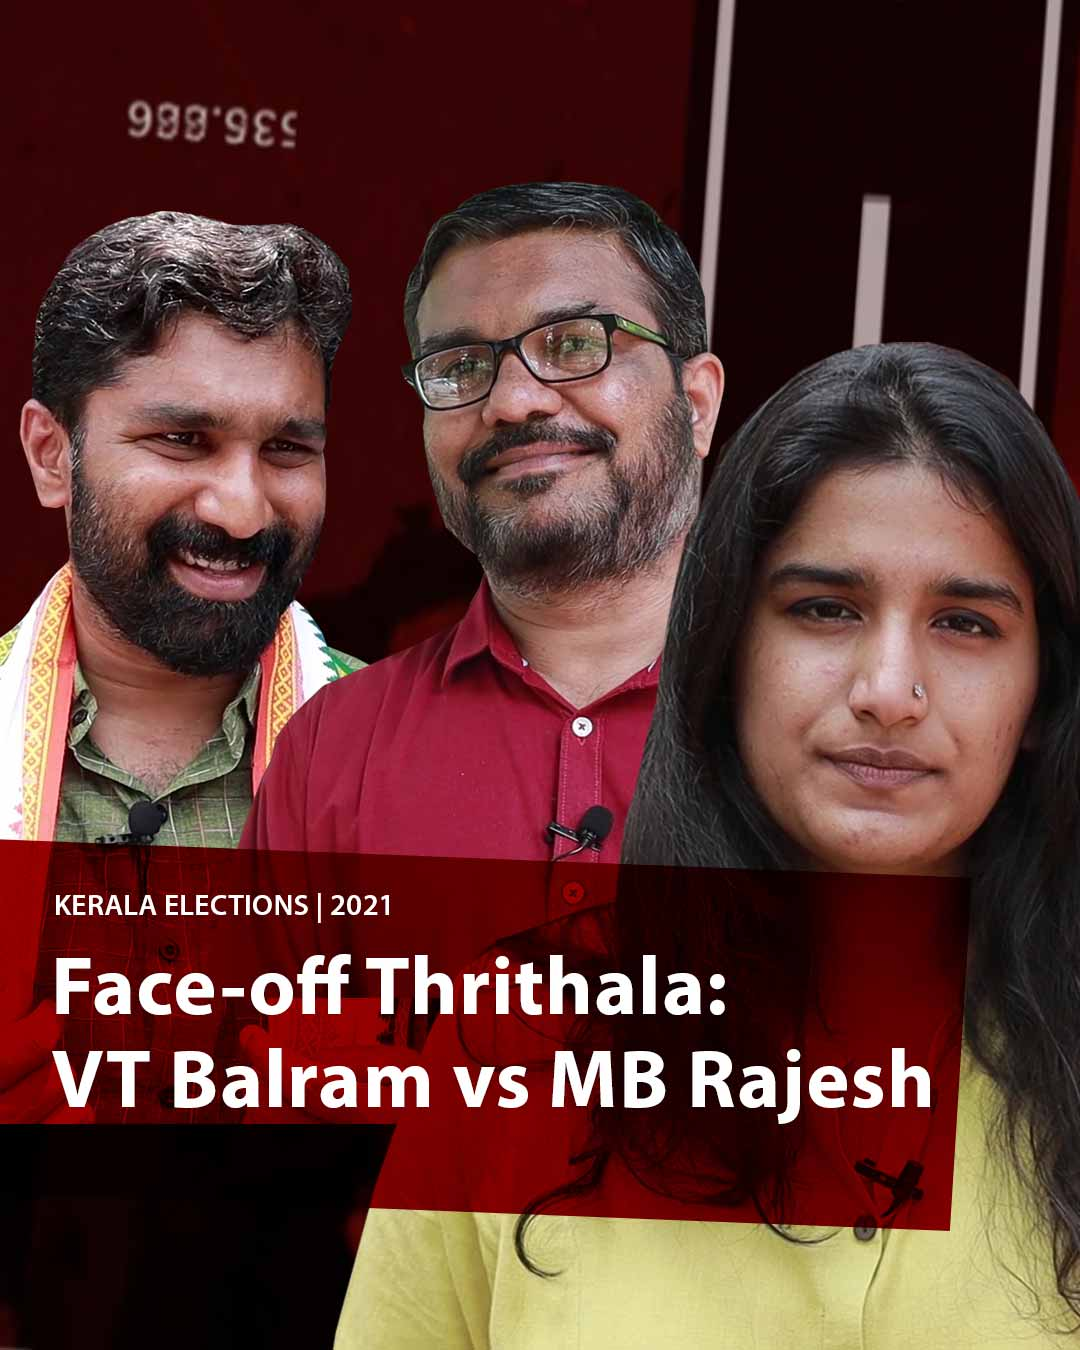 Clash of the young titans: VT Balram and MB Rajesh battle it out in Thrithala